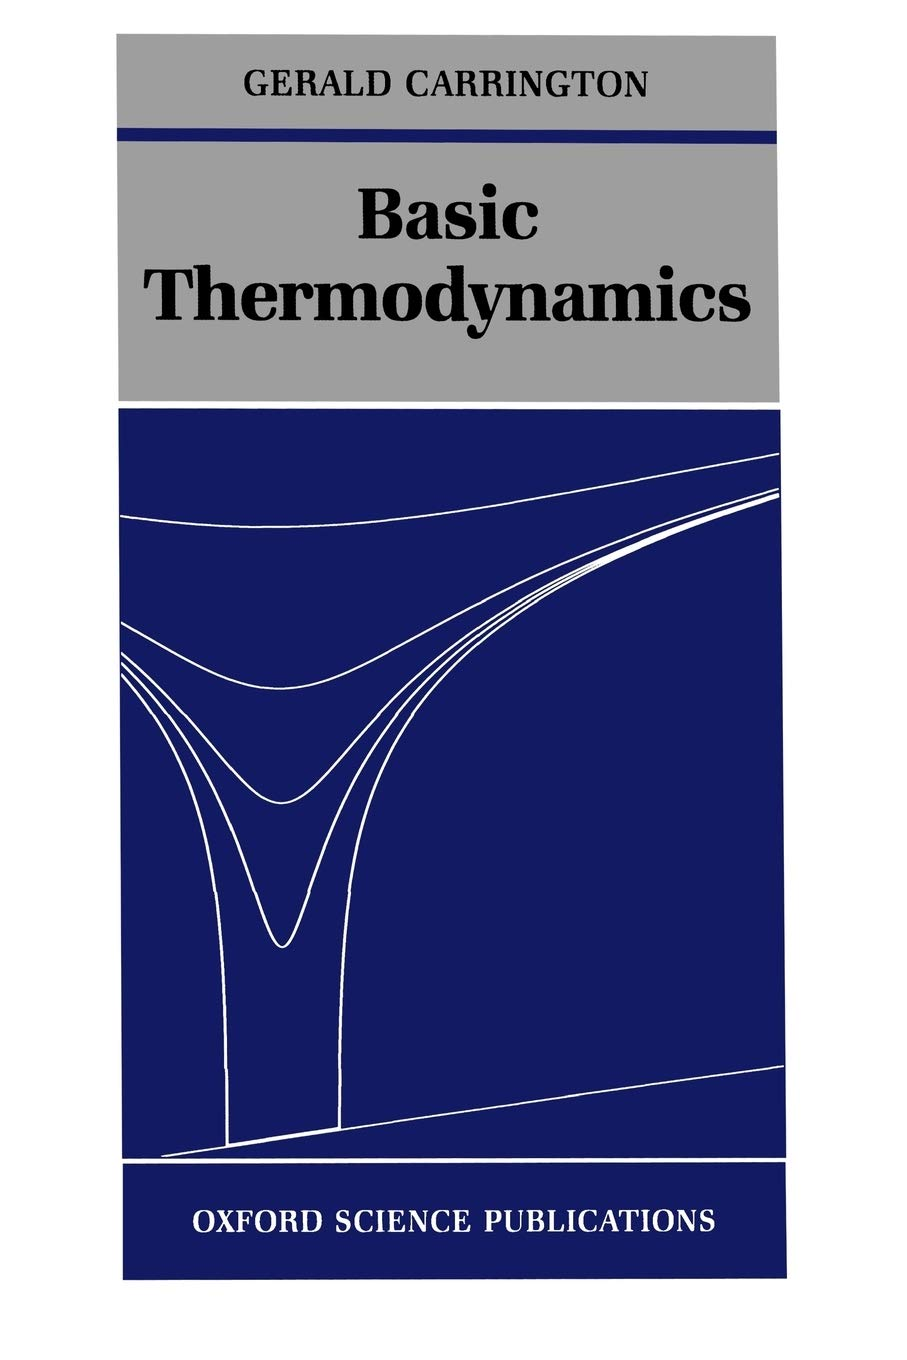 Image OfBasic Thermodynamics (Oxford Science Publications)